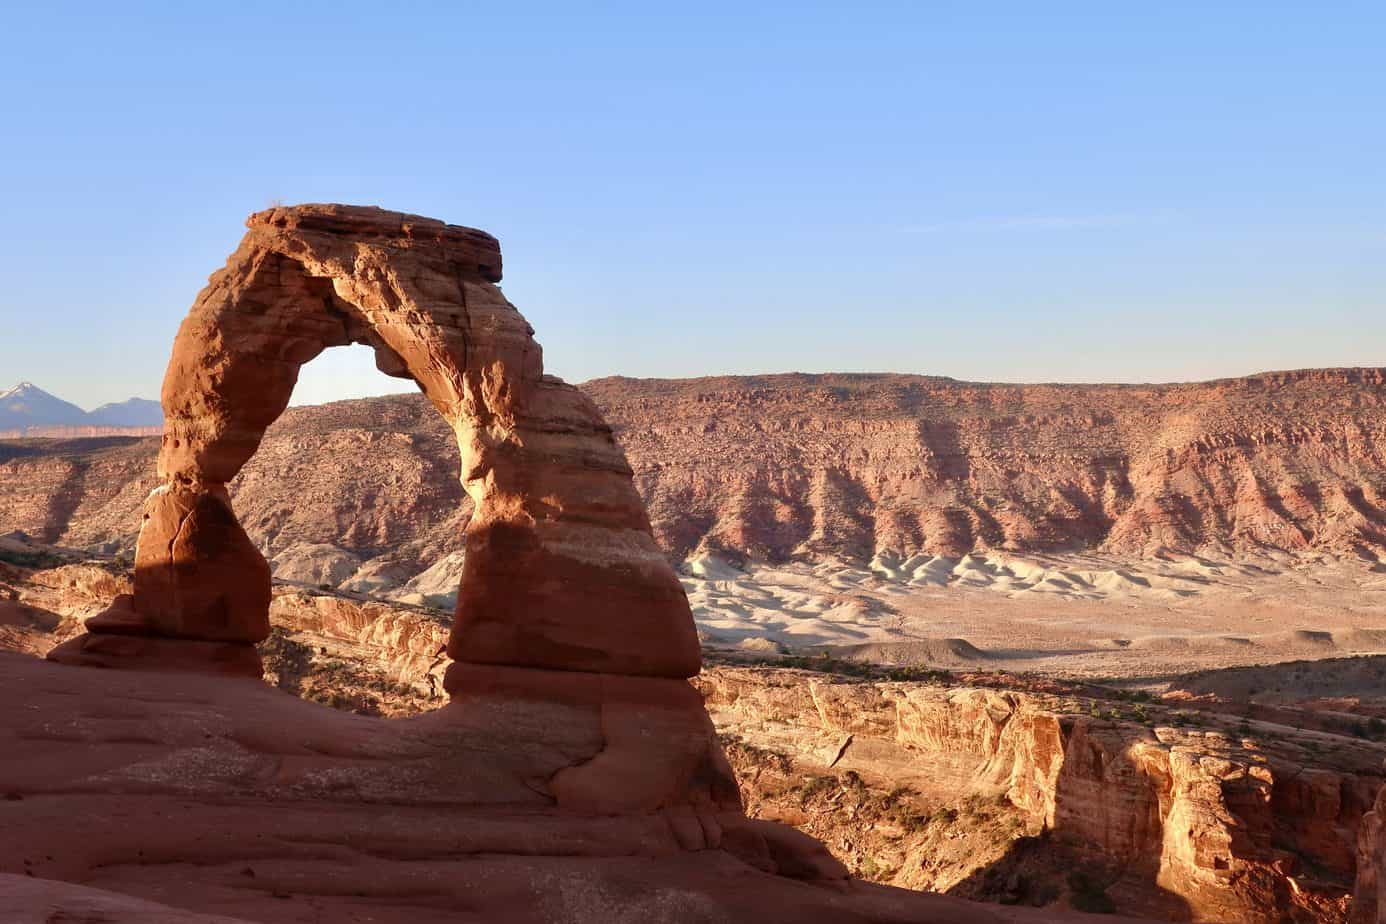 Arches National Park in One Day - How to Hike Delicate Arch